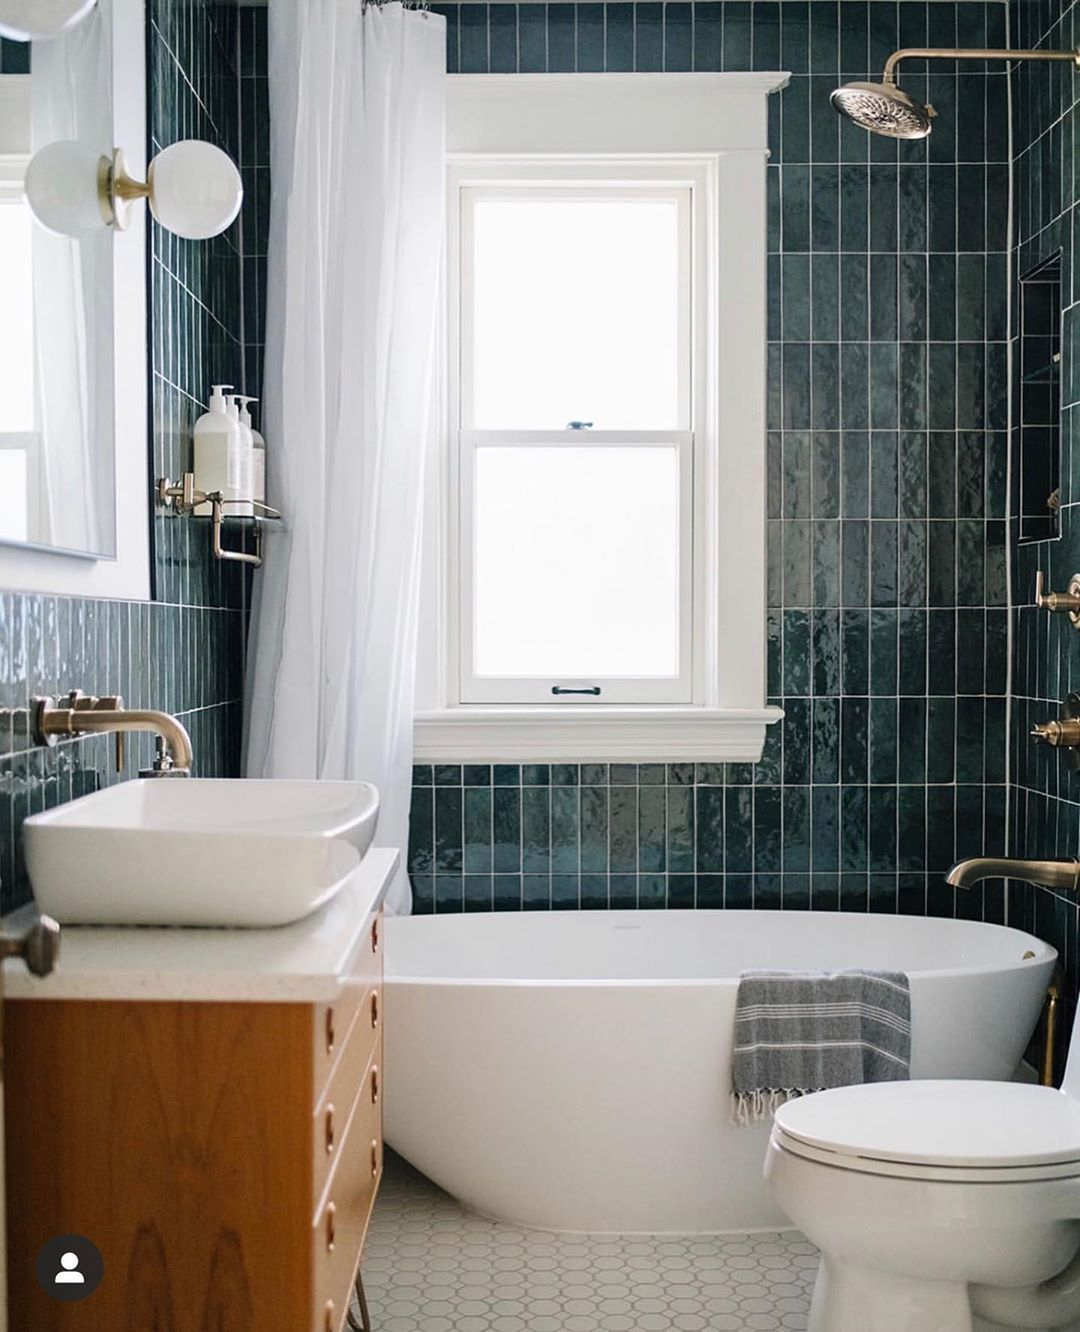 Courtney Equall On Instagram So You Guys Know That I Have Bathrooms On The Brain Lately As I M Planning Our In 2020 Bathroom Decor Bathroom Makeover Bathroom Design